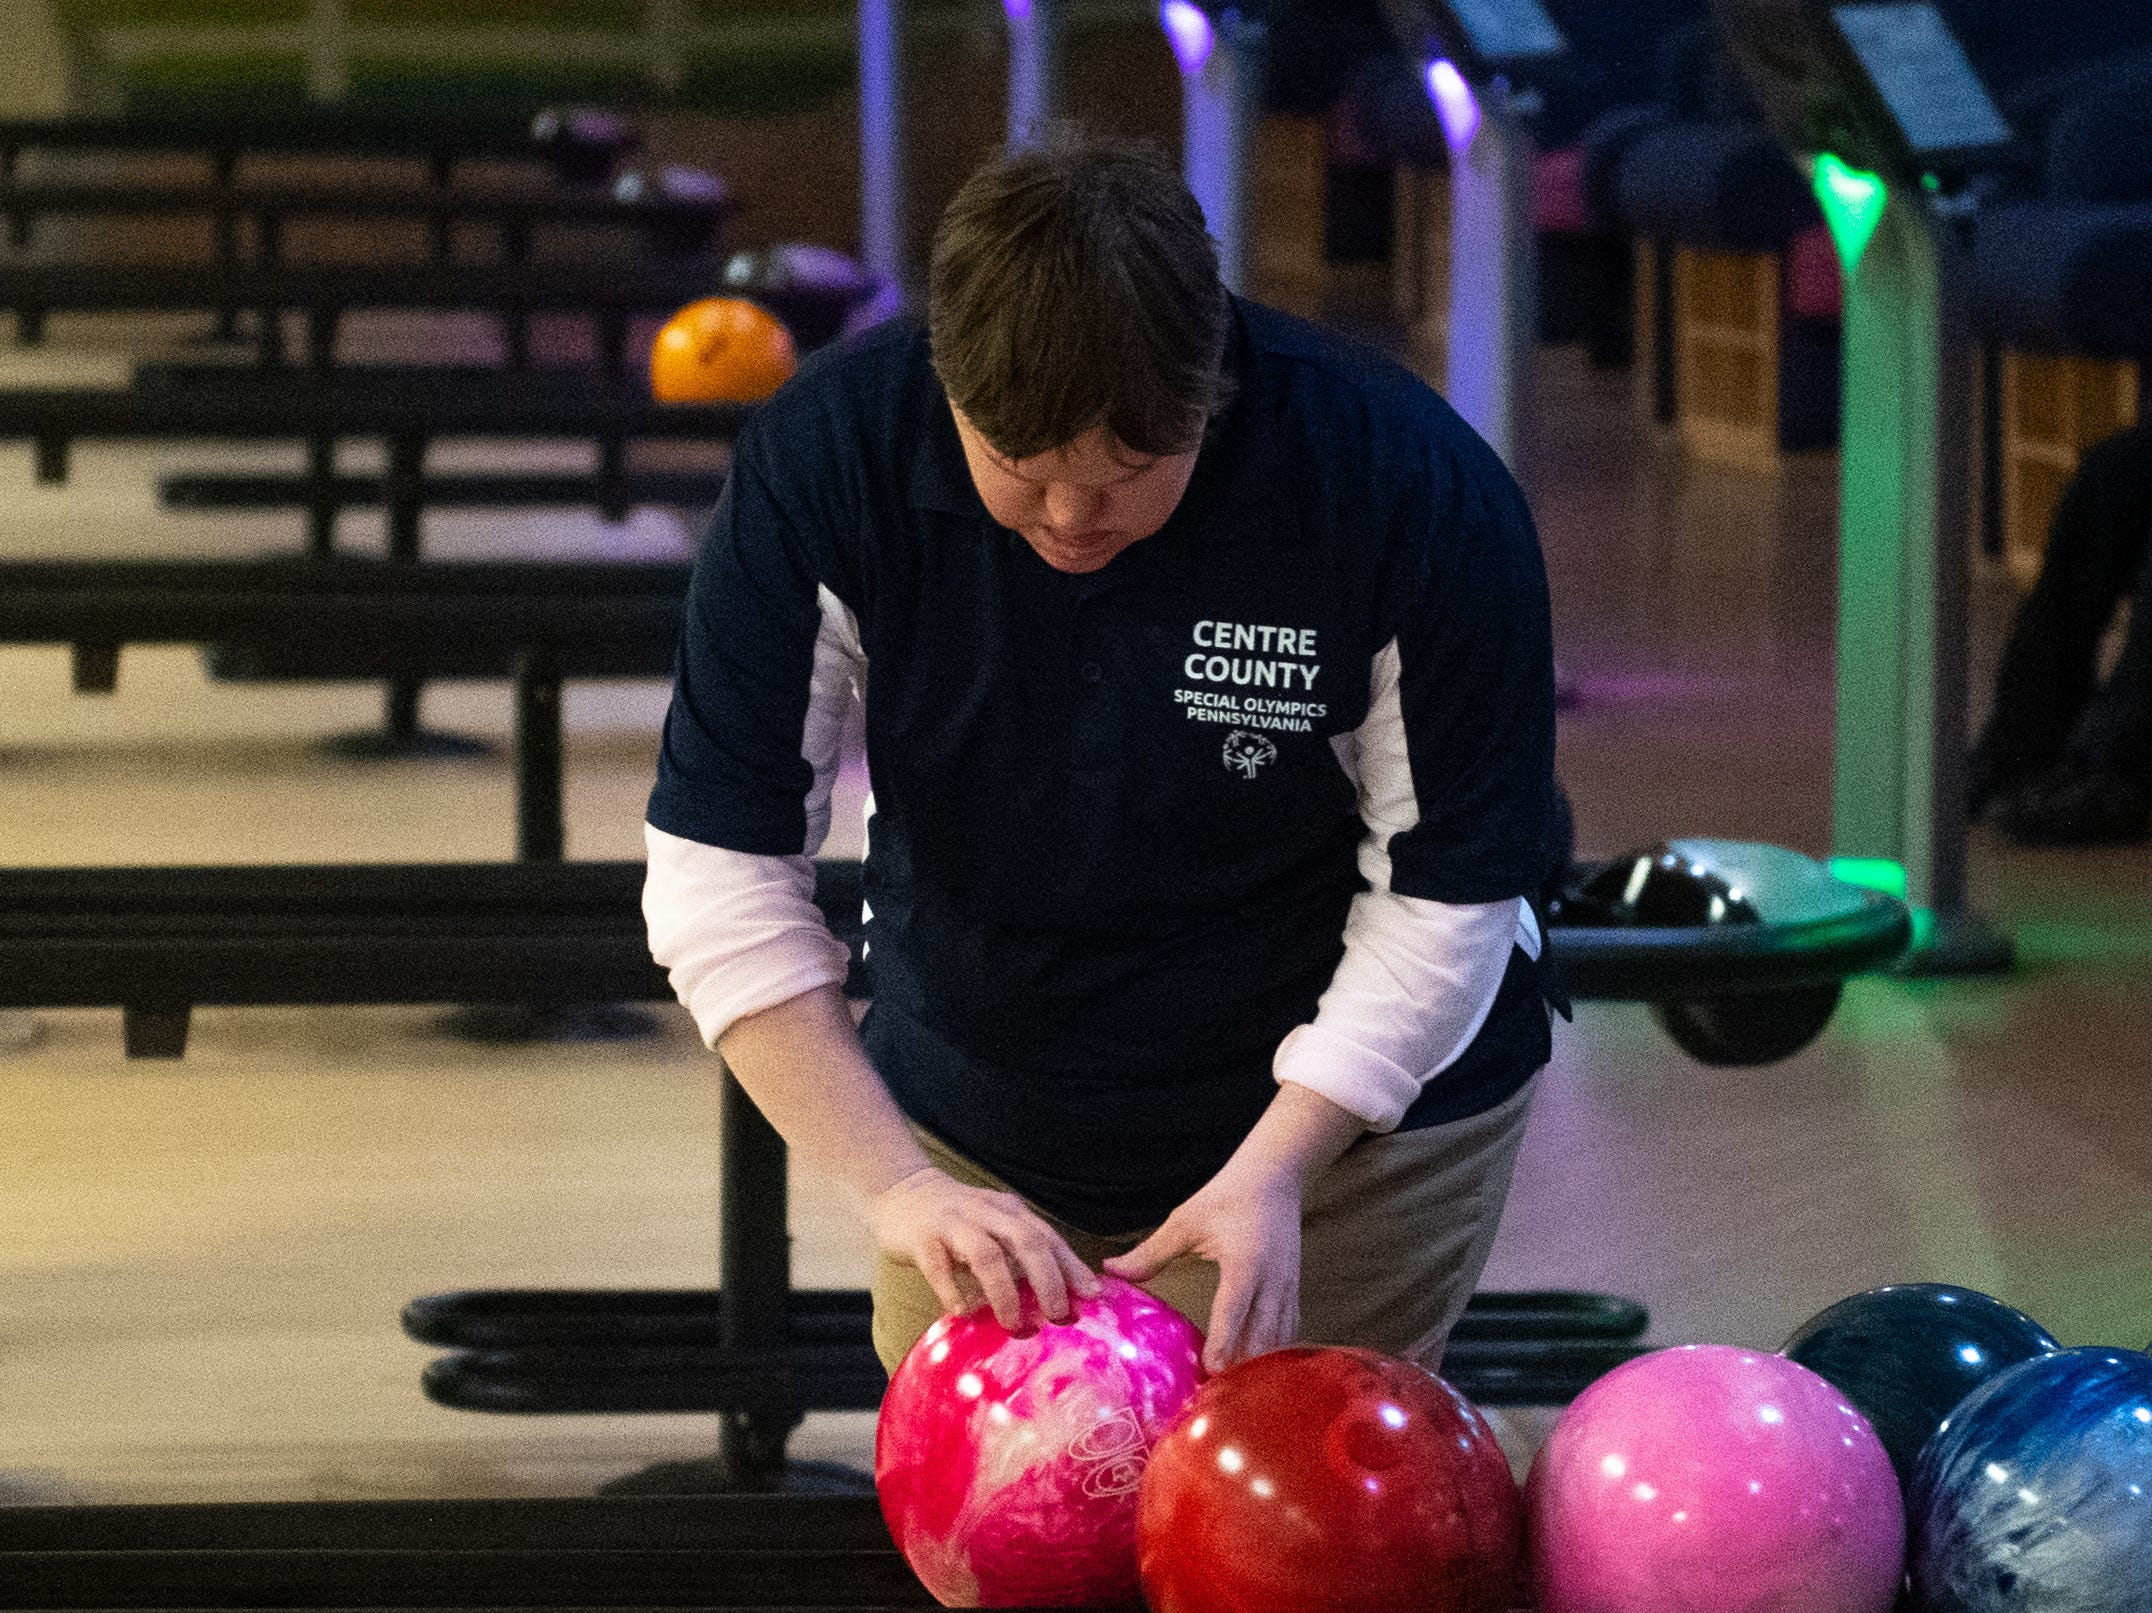 Every athlete has a specific ball they simply can't bowl without during the Special Olympics Pennsylvania Indoor Winter Games, March 2, 2019.